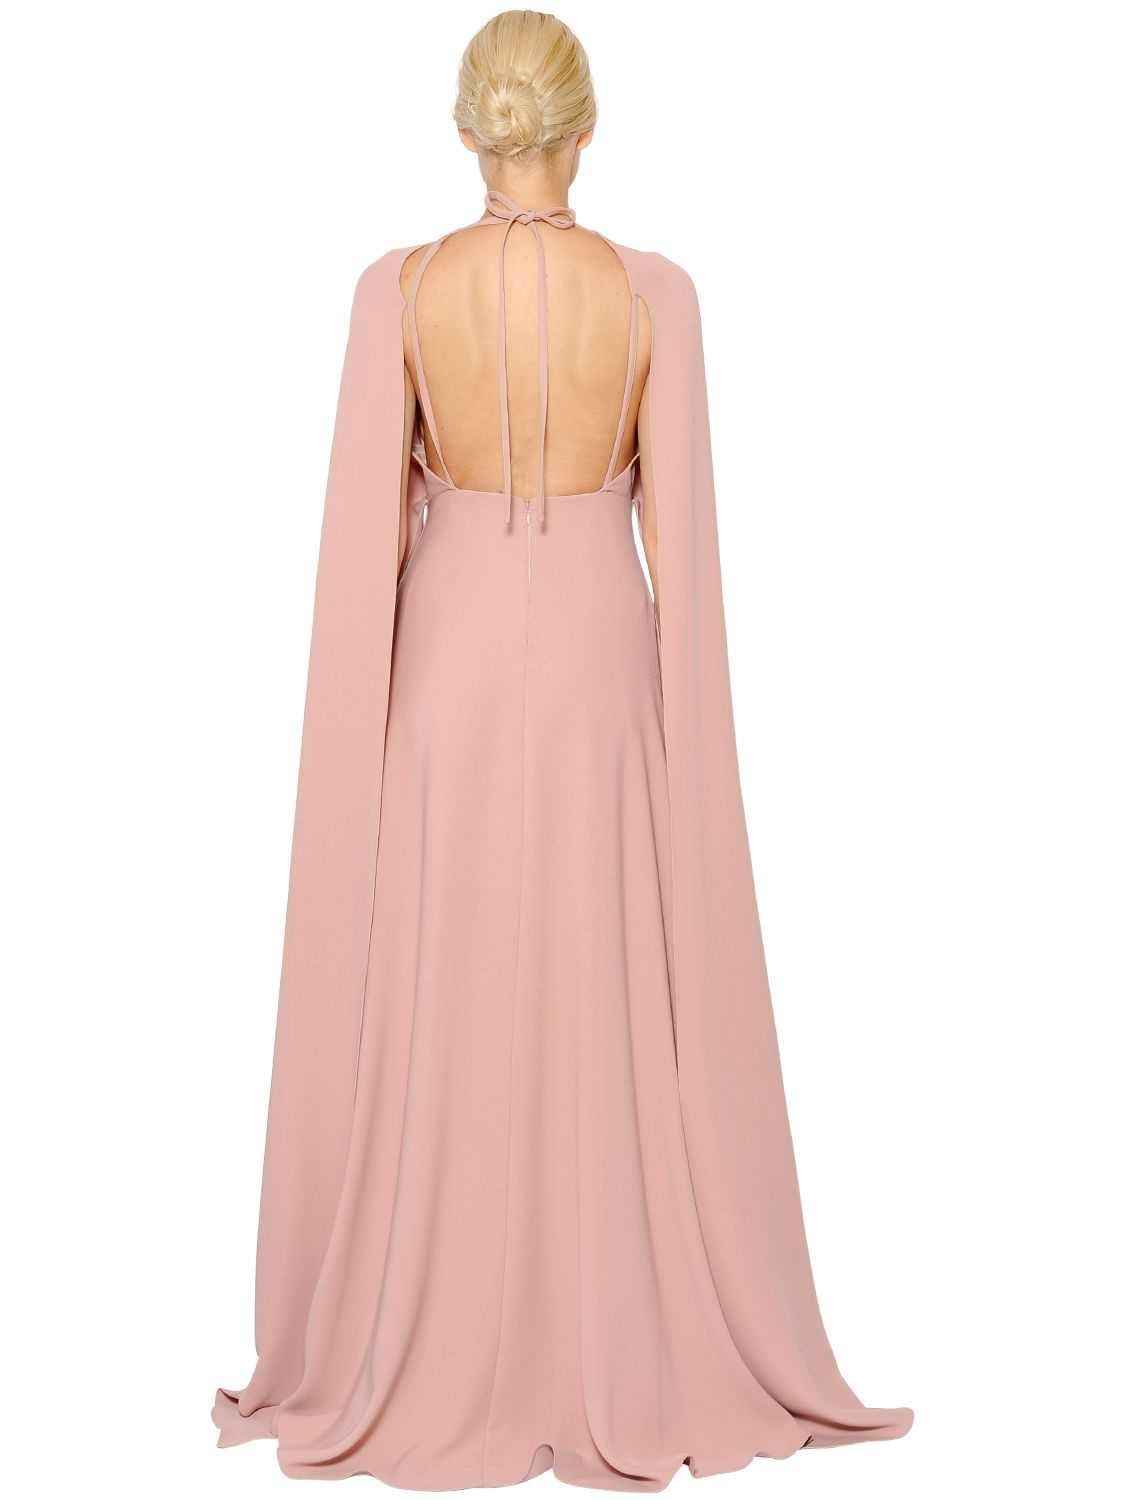 Lyst - Valentino Open Back Silk Cady Cape Dress in Pink